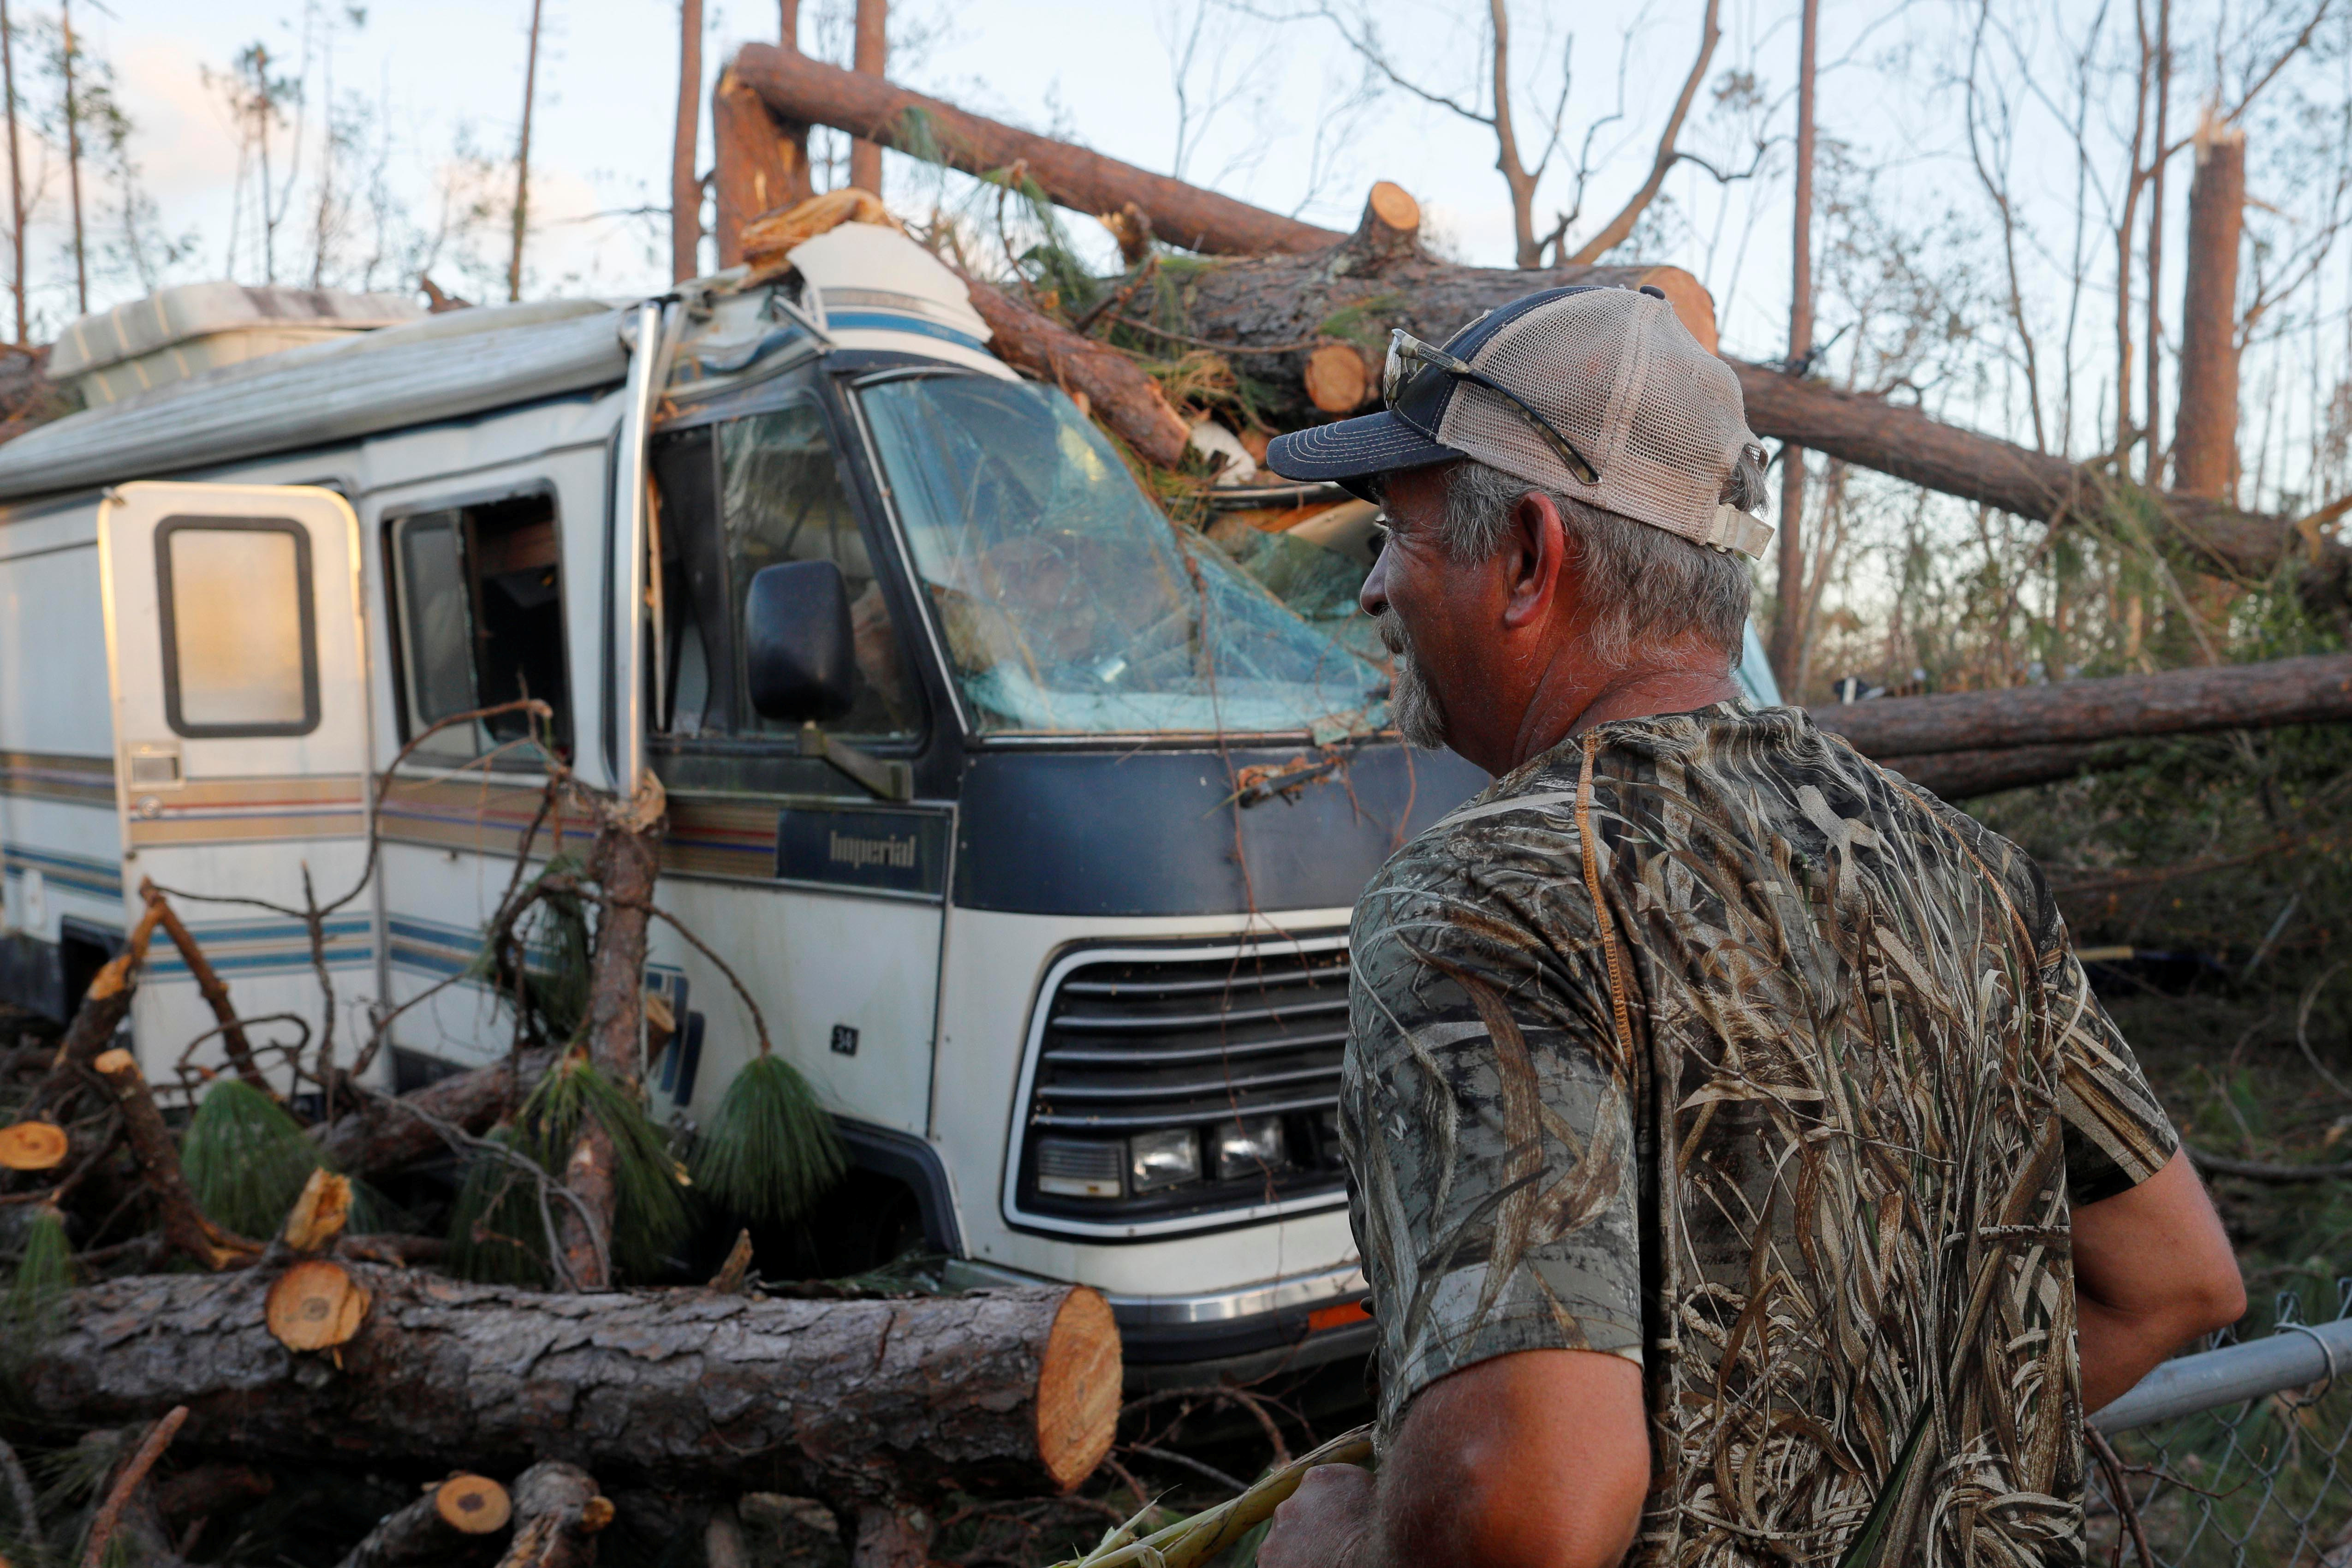 Chuck Pester looks over the damage to his RV and back yard caused by Hurricane Michael in St. Andrews Bay